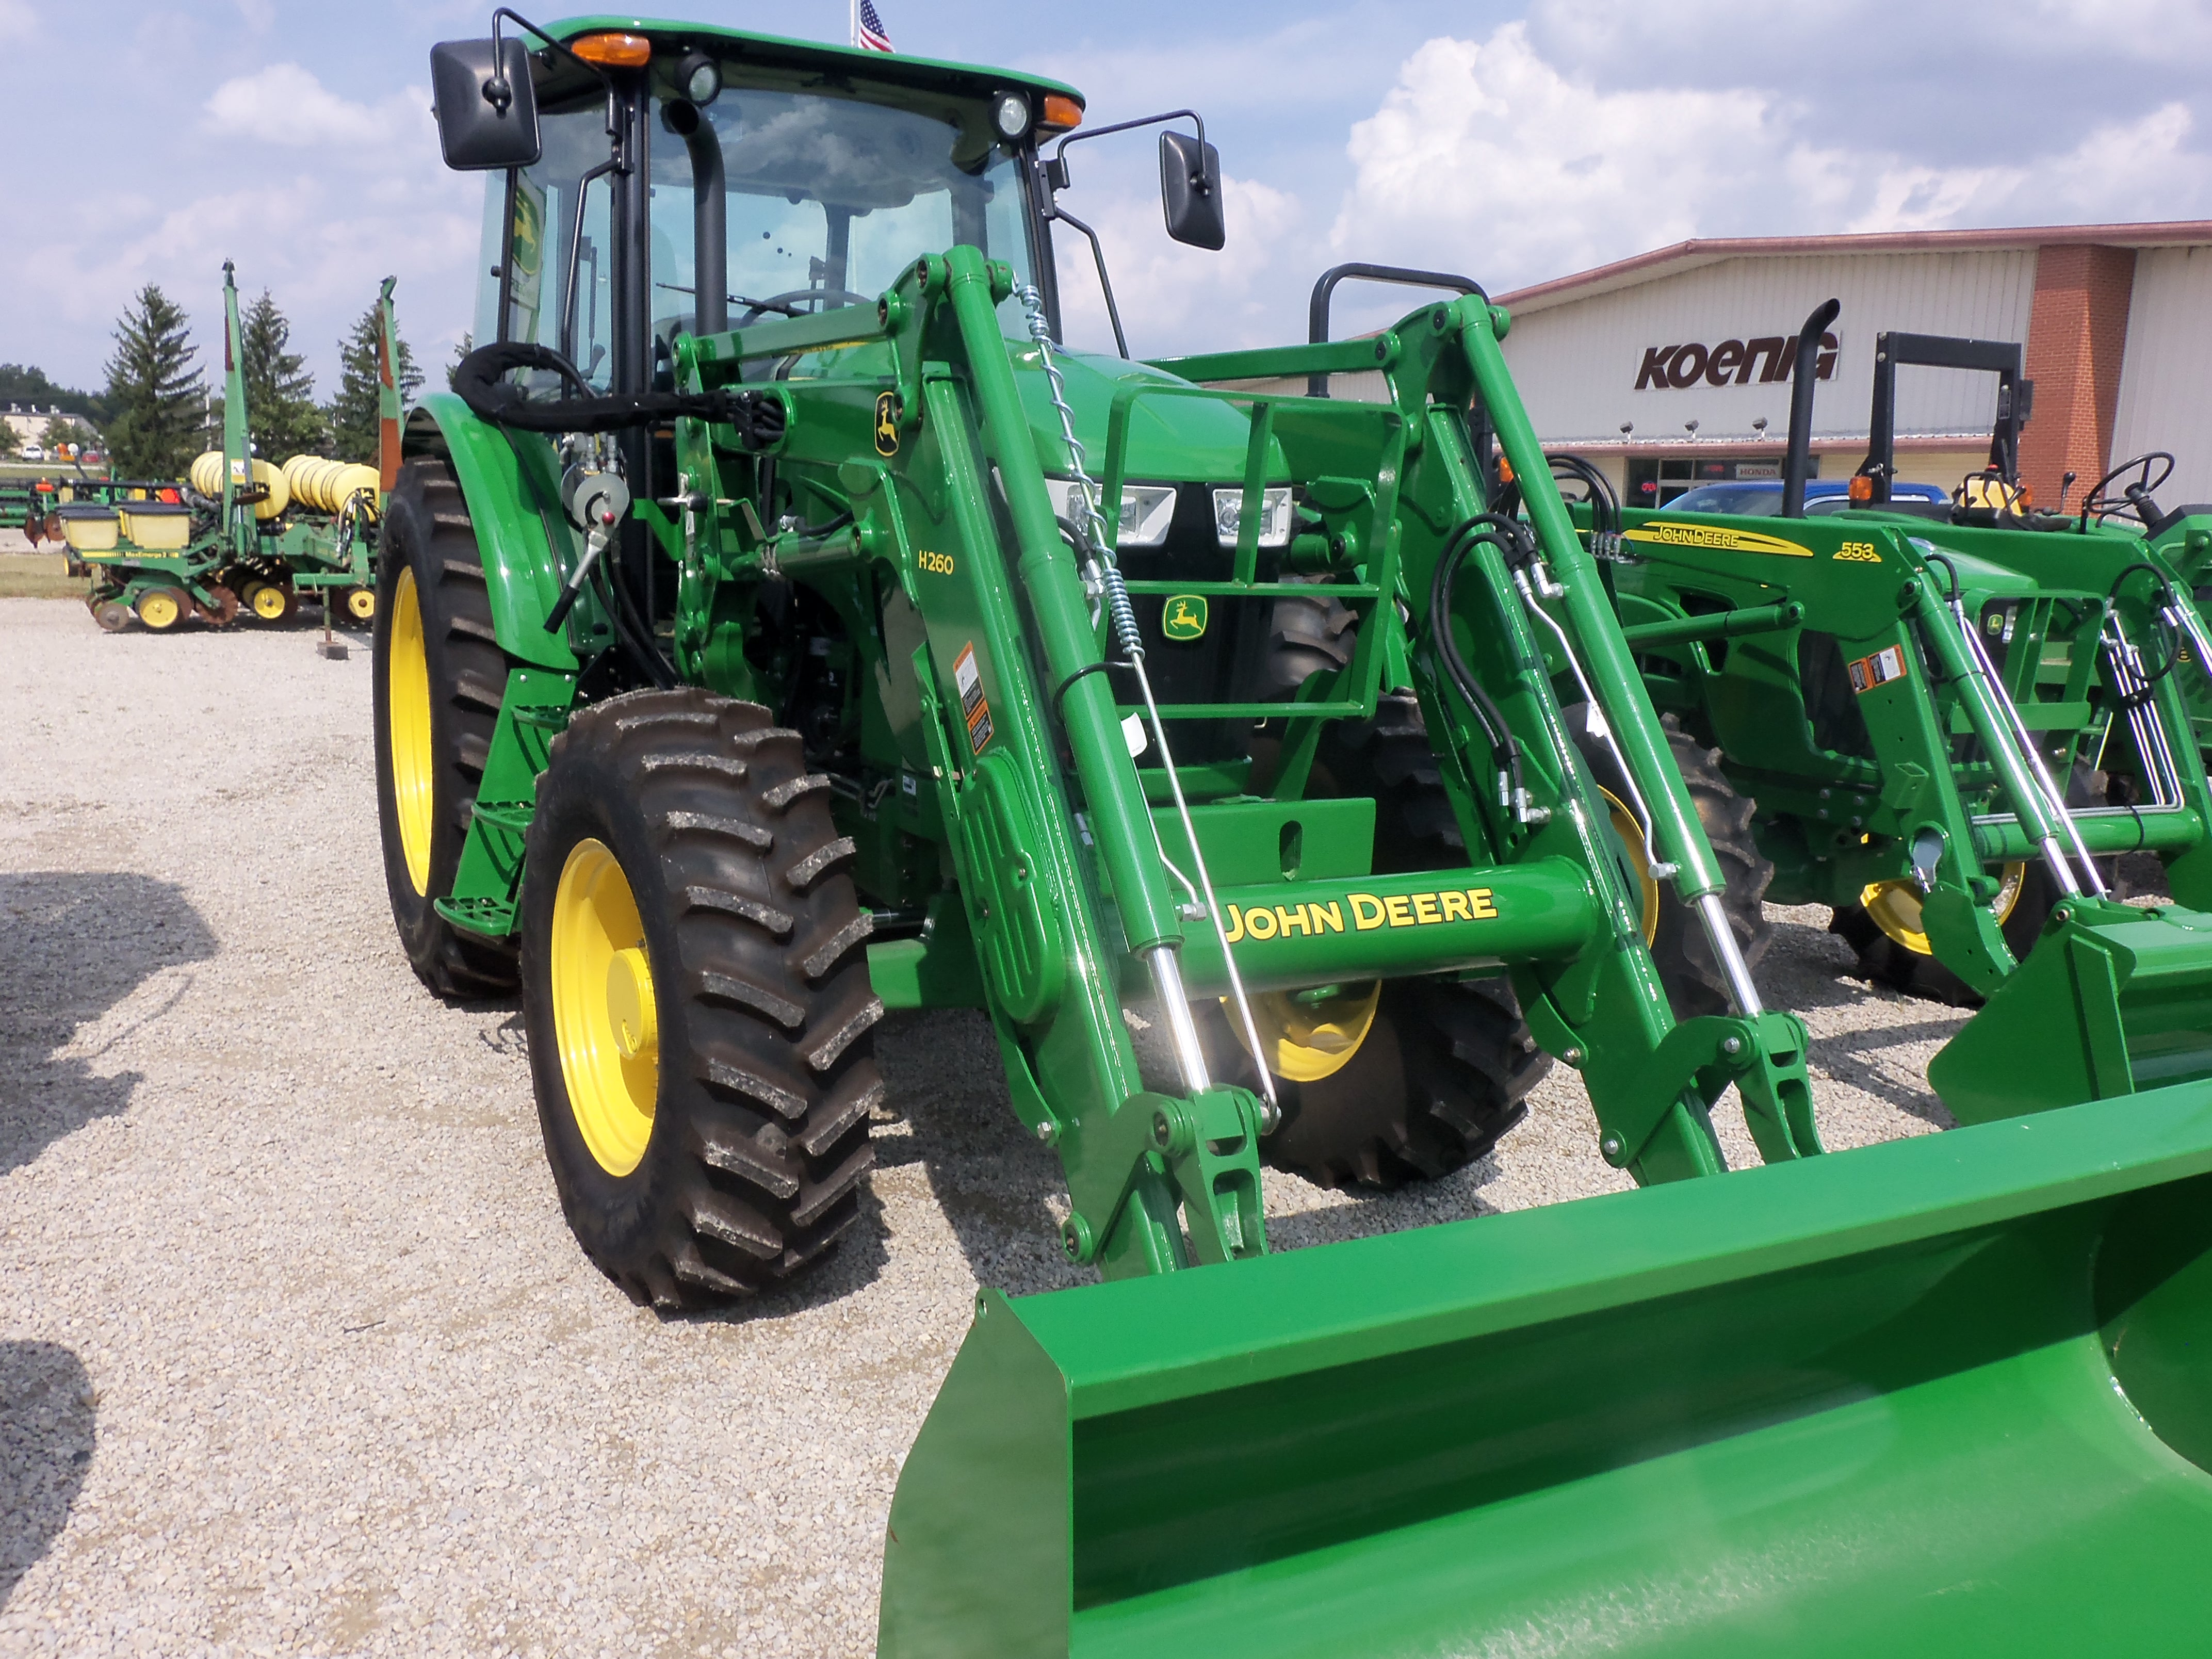 John Deere 511D with H260 loader | John Deere equipment | Pinterest